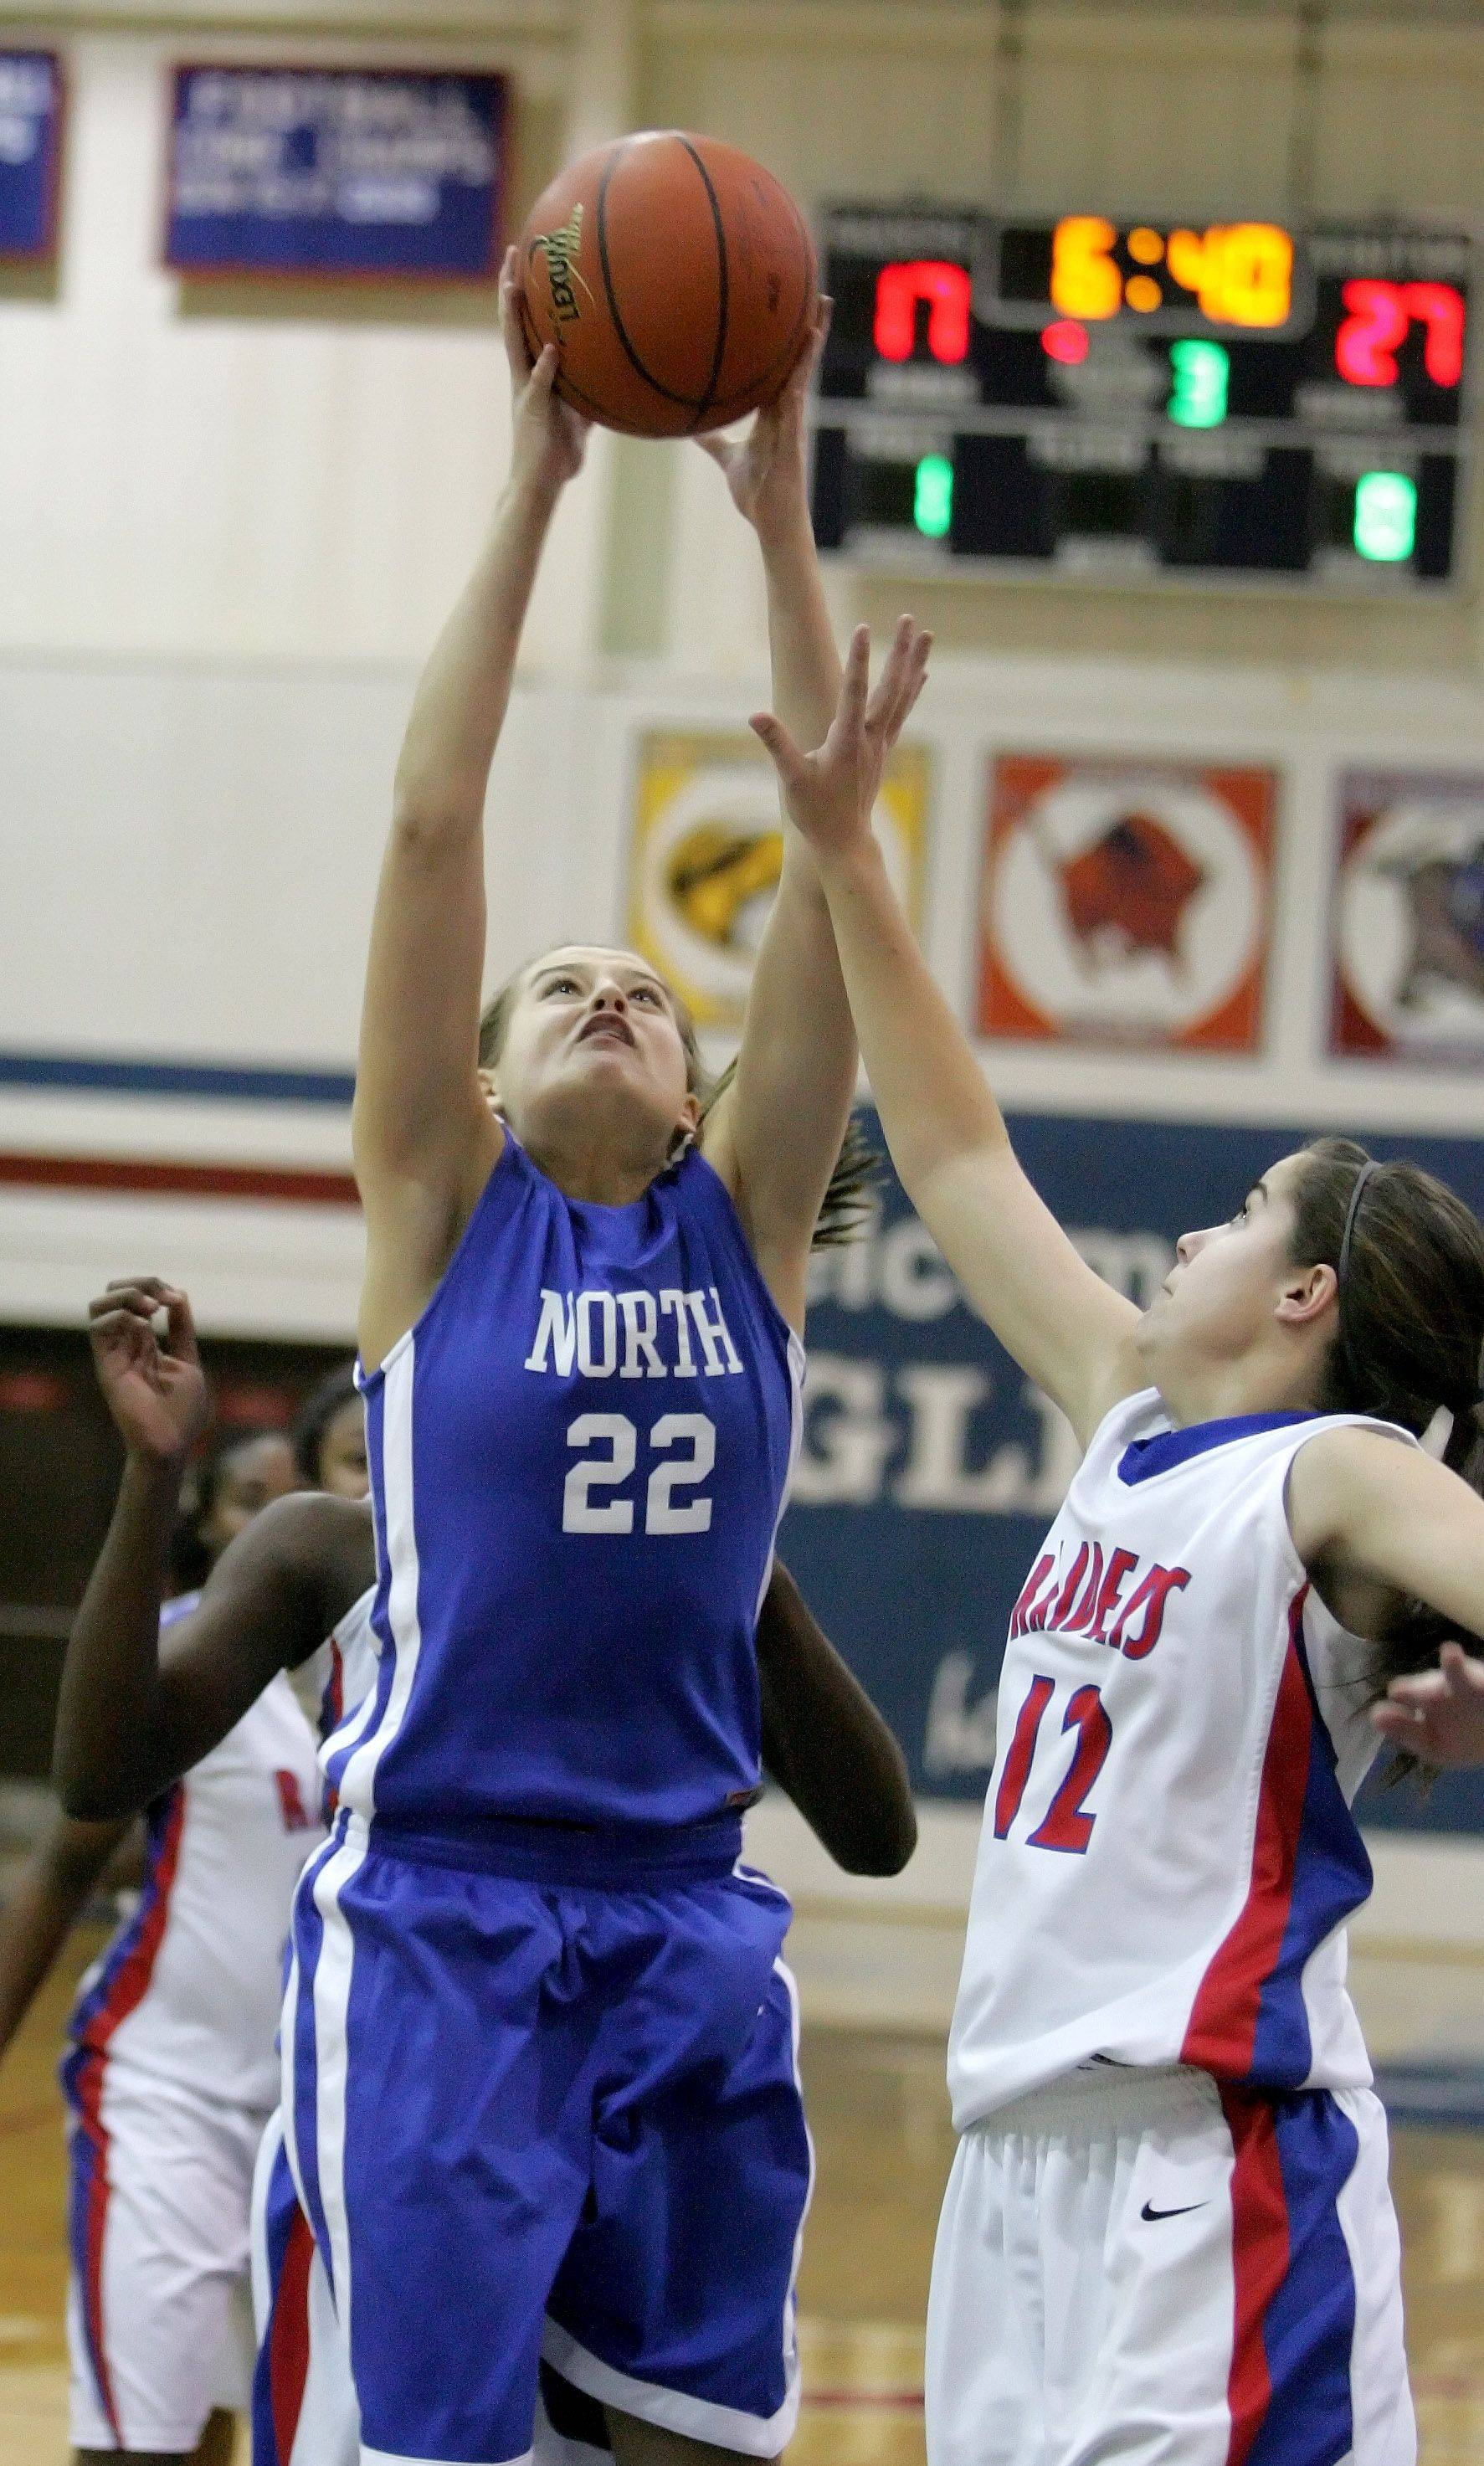 A.K. Feltes of Wheaton North goes up for a basket as Alyse Cates of Glenbard South, right, defends.